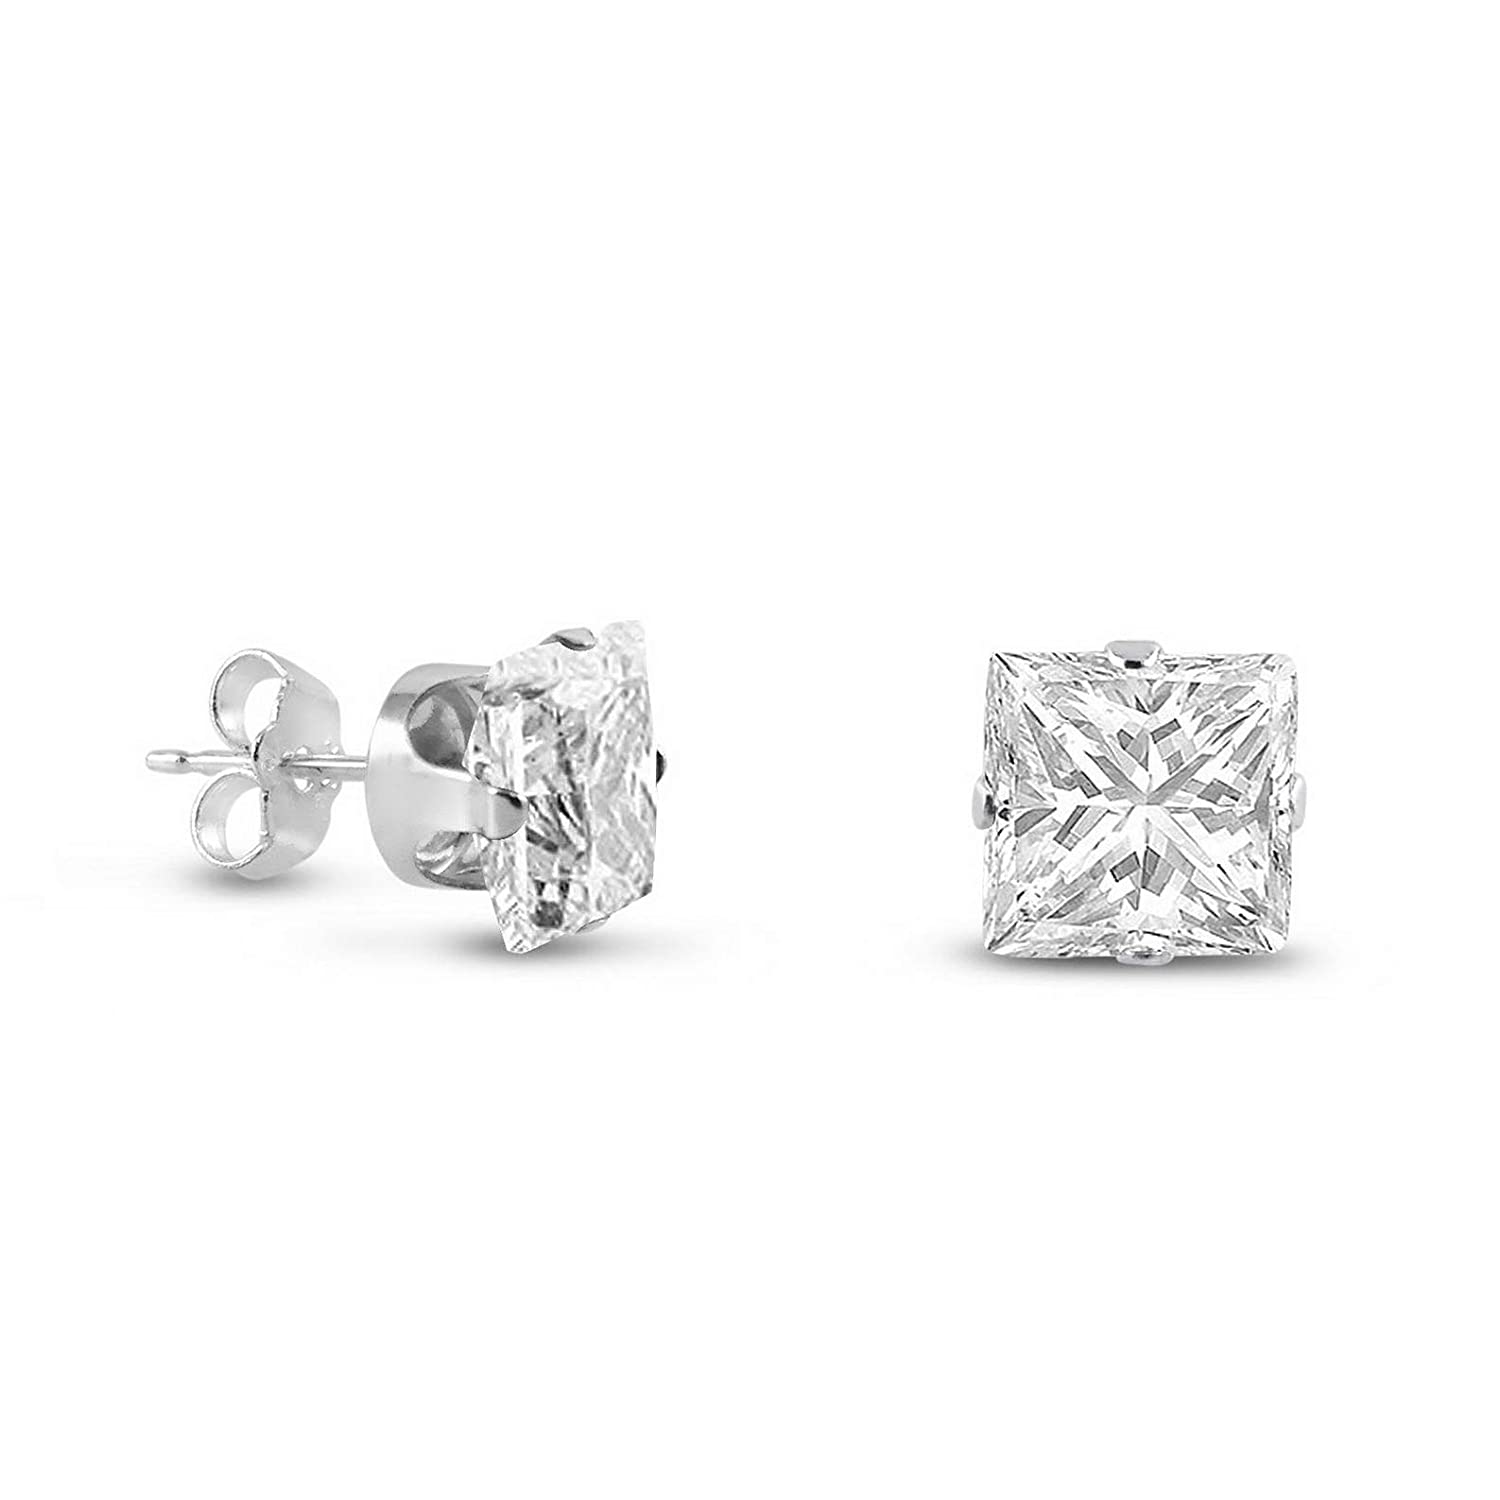 13175 Clear White CZ ~ April Birthstone Waldenn .925 Sterling Silver Square Stud Earrings 4mm Model ERRNGS Medium